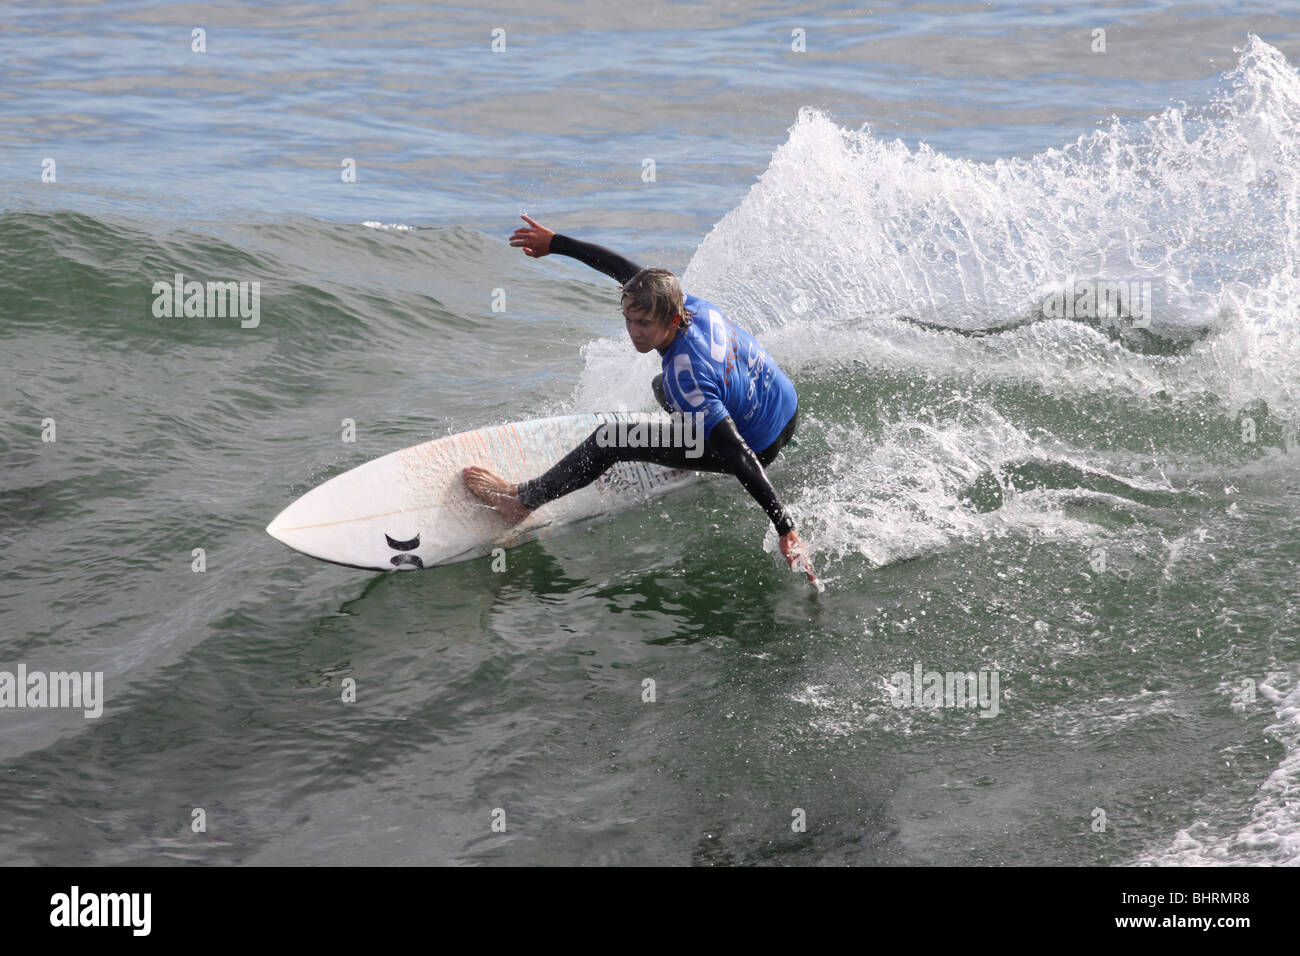 surfing competition Monterey Bay California - Stock Image